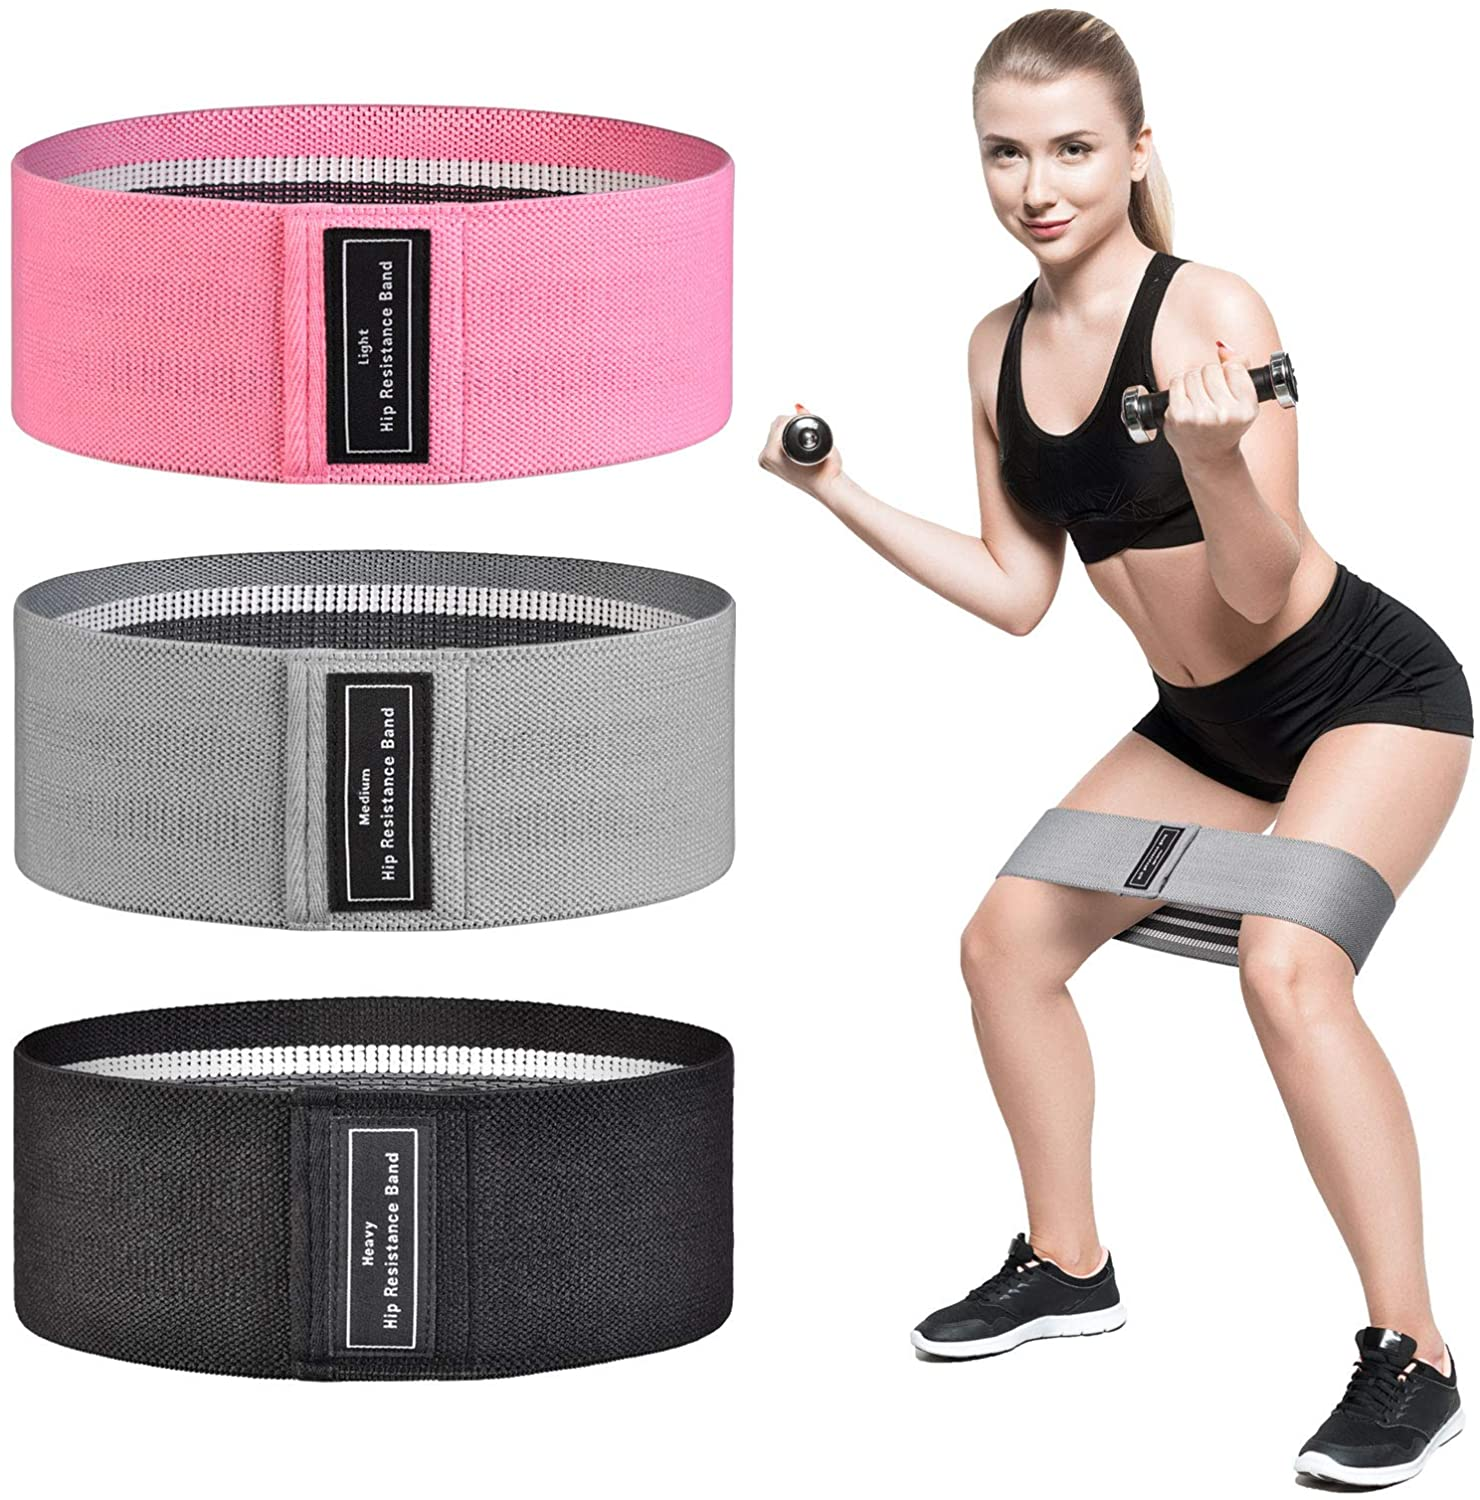 NEXISS Resistance Bands for Legs and Butt, Fabric Booty Bands, 3 Set Exercise Bands and Workout Bands,Strength Fitness Bands, Resistance Loops Hip Thigh Glute Bands